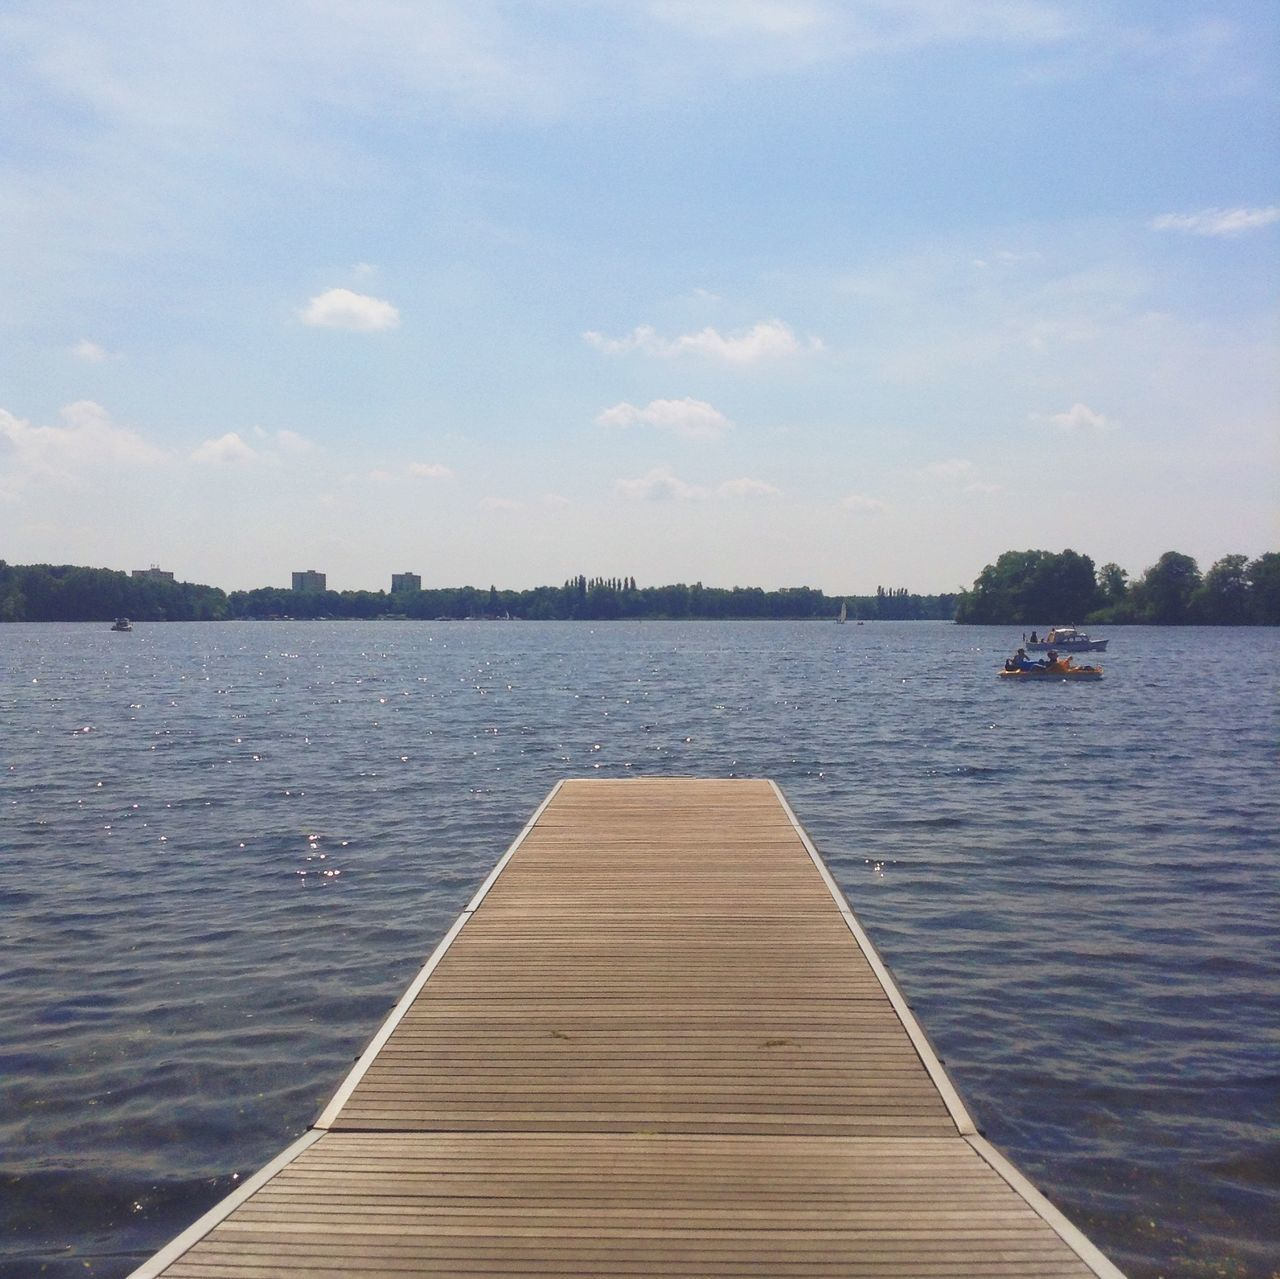 water, sky, pier, nature, nautical vessel, jetty, wood - material, cloud - sky, day, outdoors, lake, tree, tranquility, beauty in nature, scenics, no people, sailing